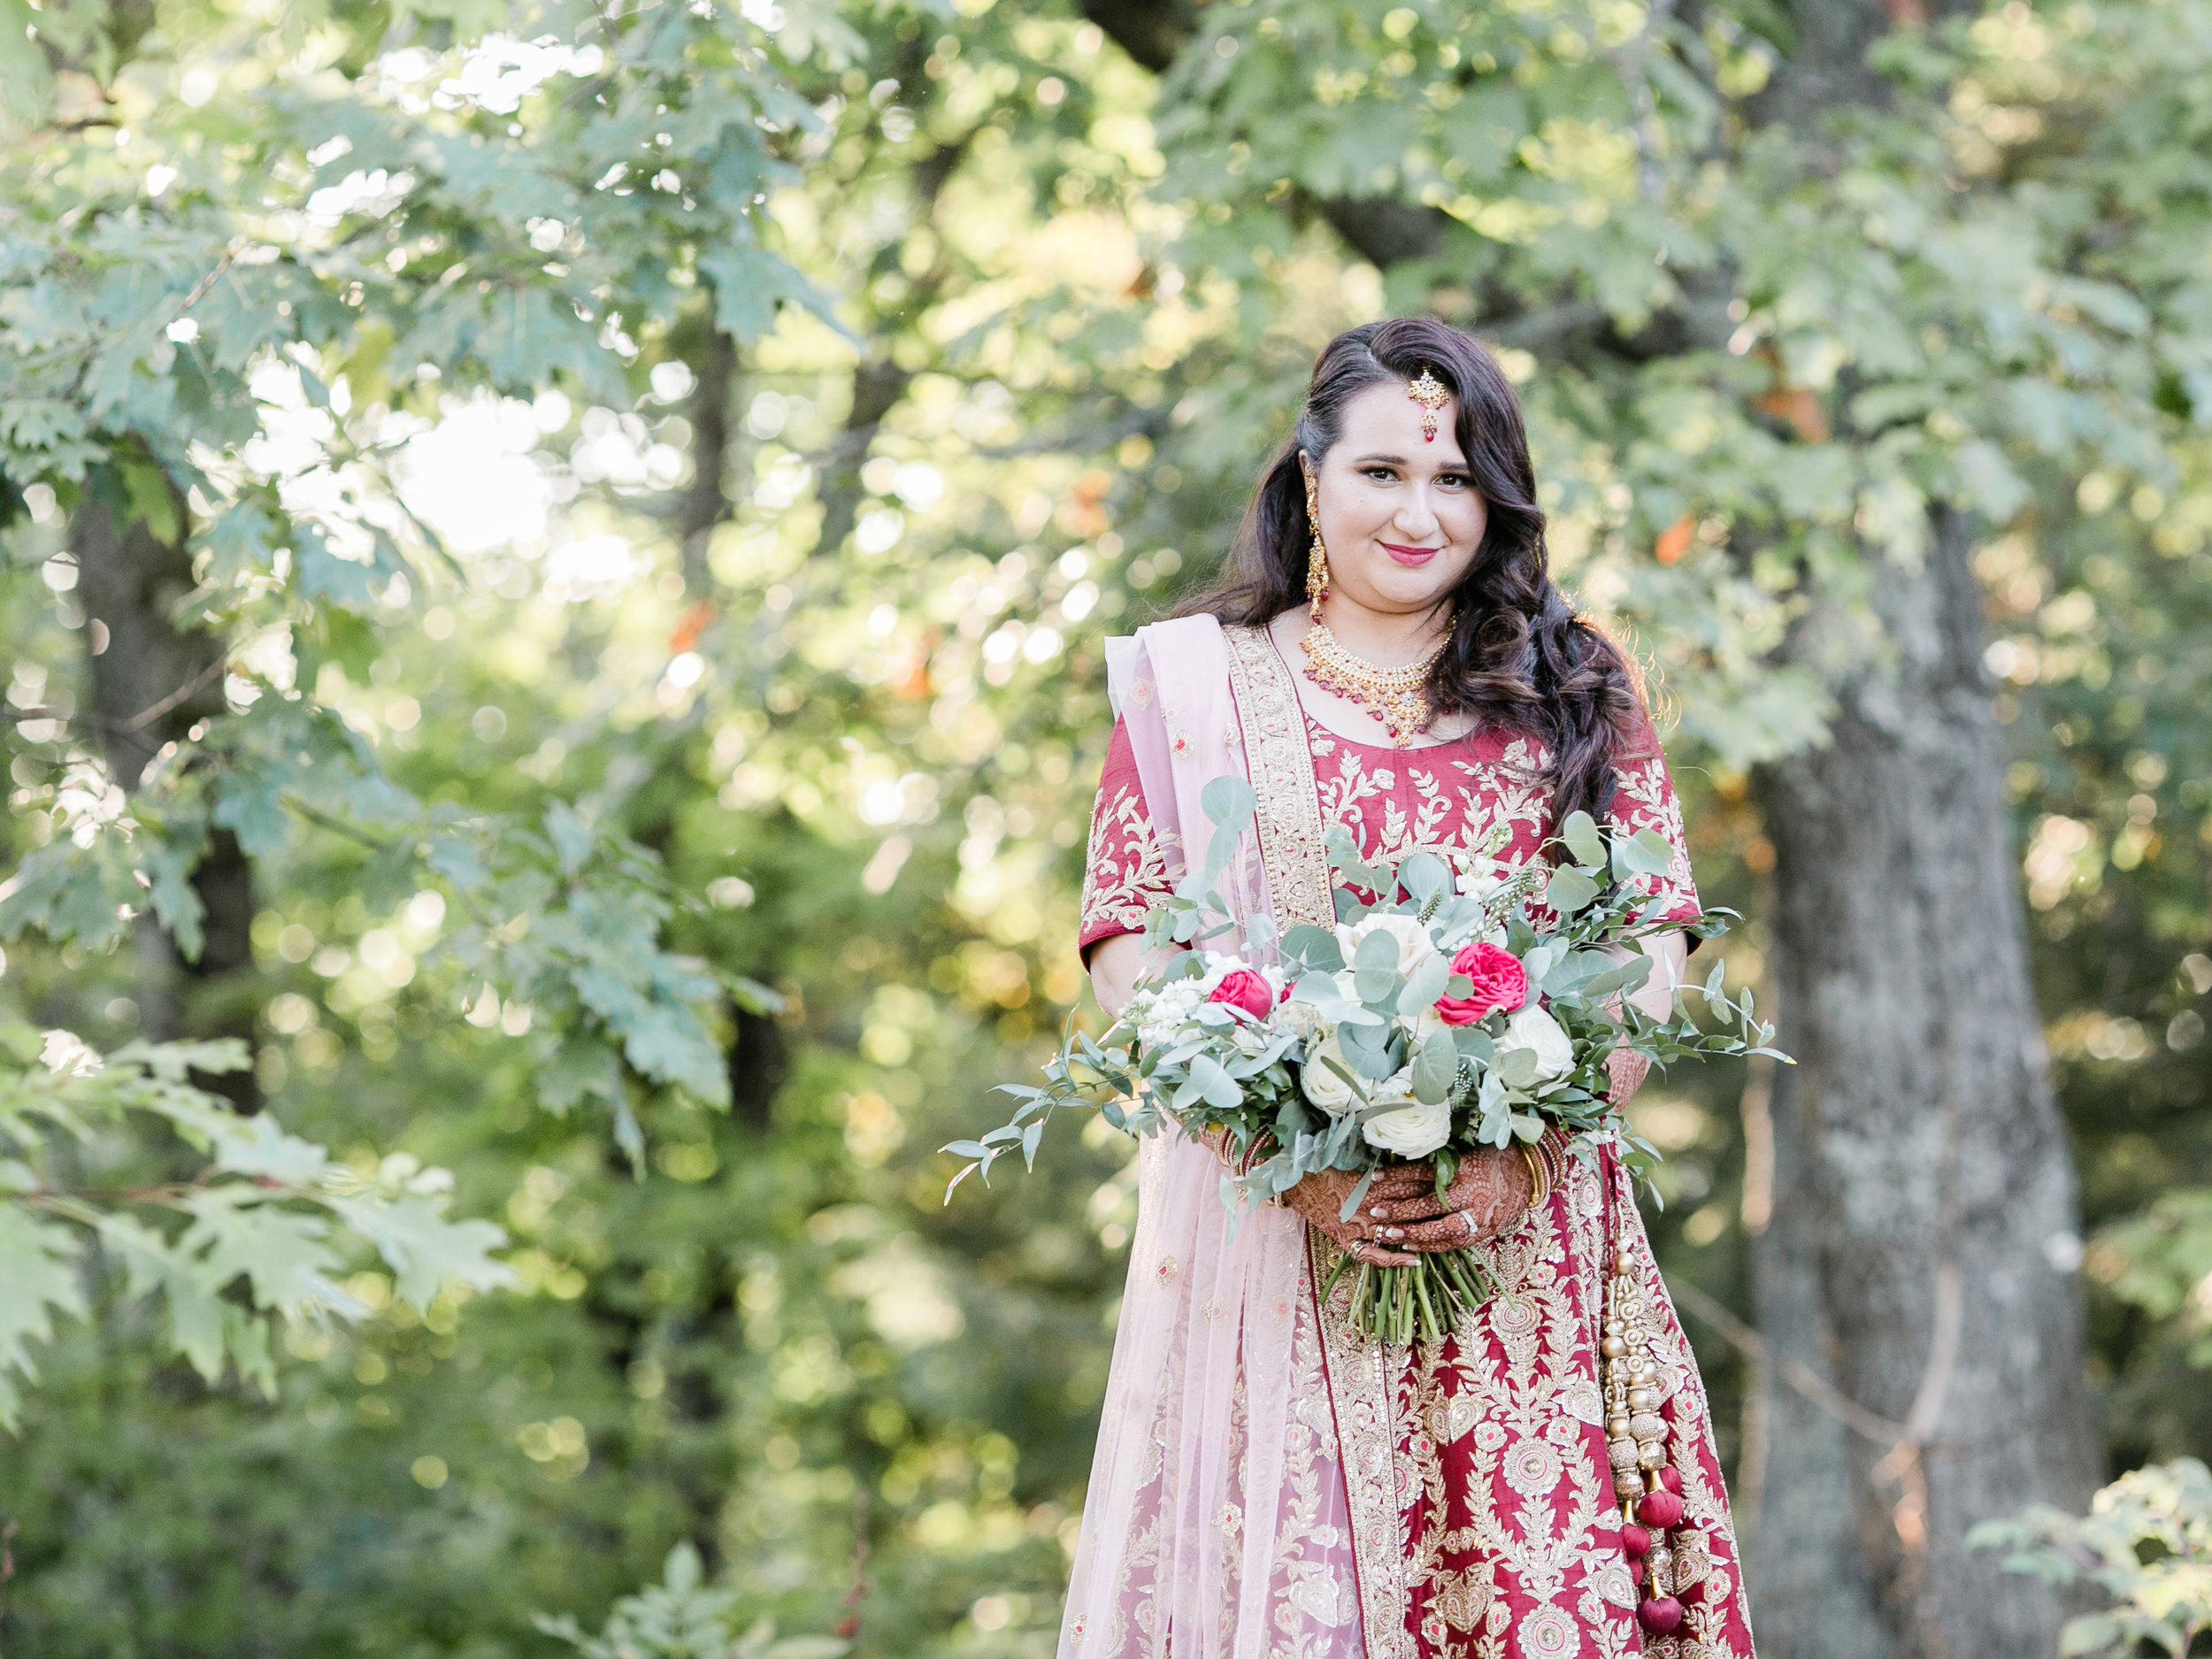 LeBelvedere_MountainTopWedding_StephanieMasonPhotography-315.jpg